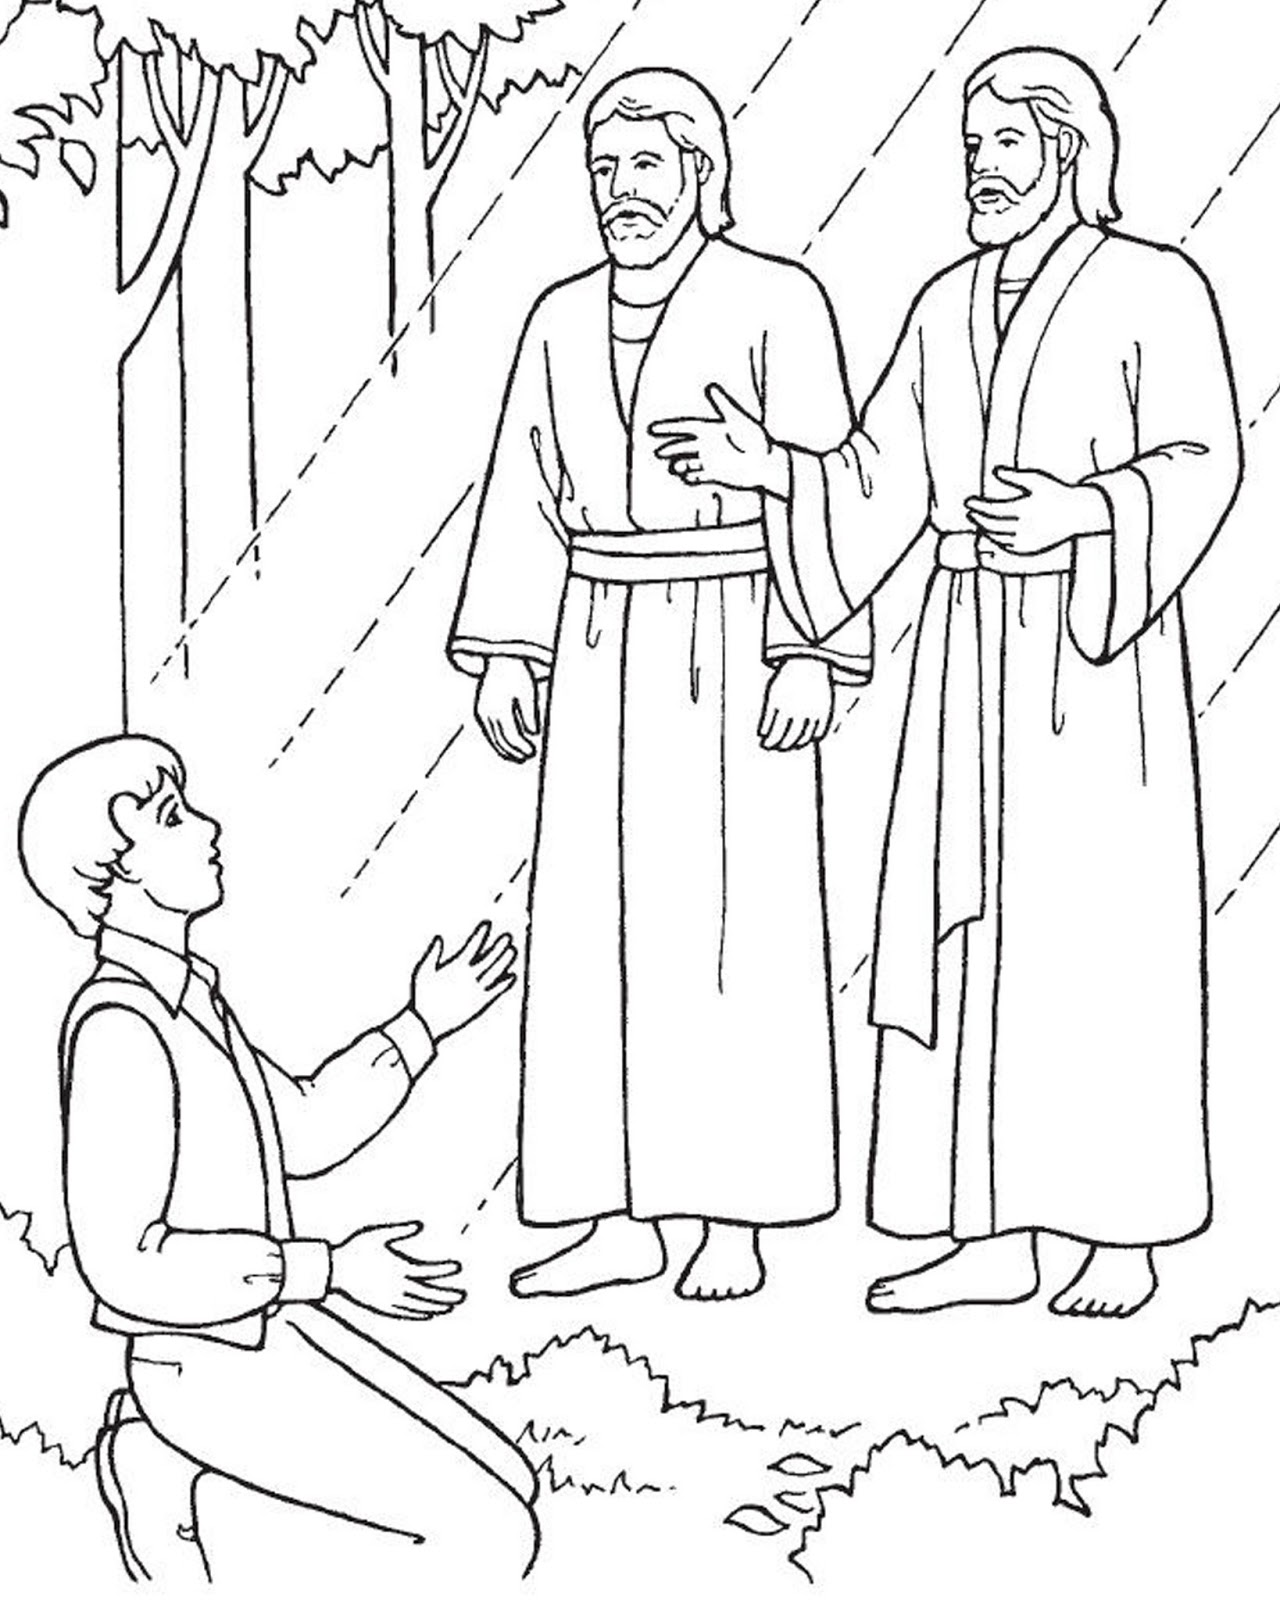 Joseph Smith First Vision Coloring Page : joseph, smith, first, vision, coloring, Coloring, Pages:, Joseph, Smith, First, Vision